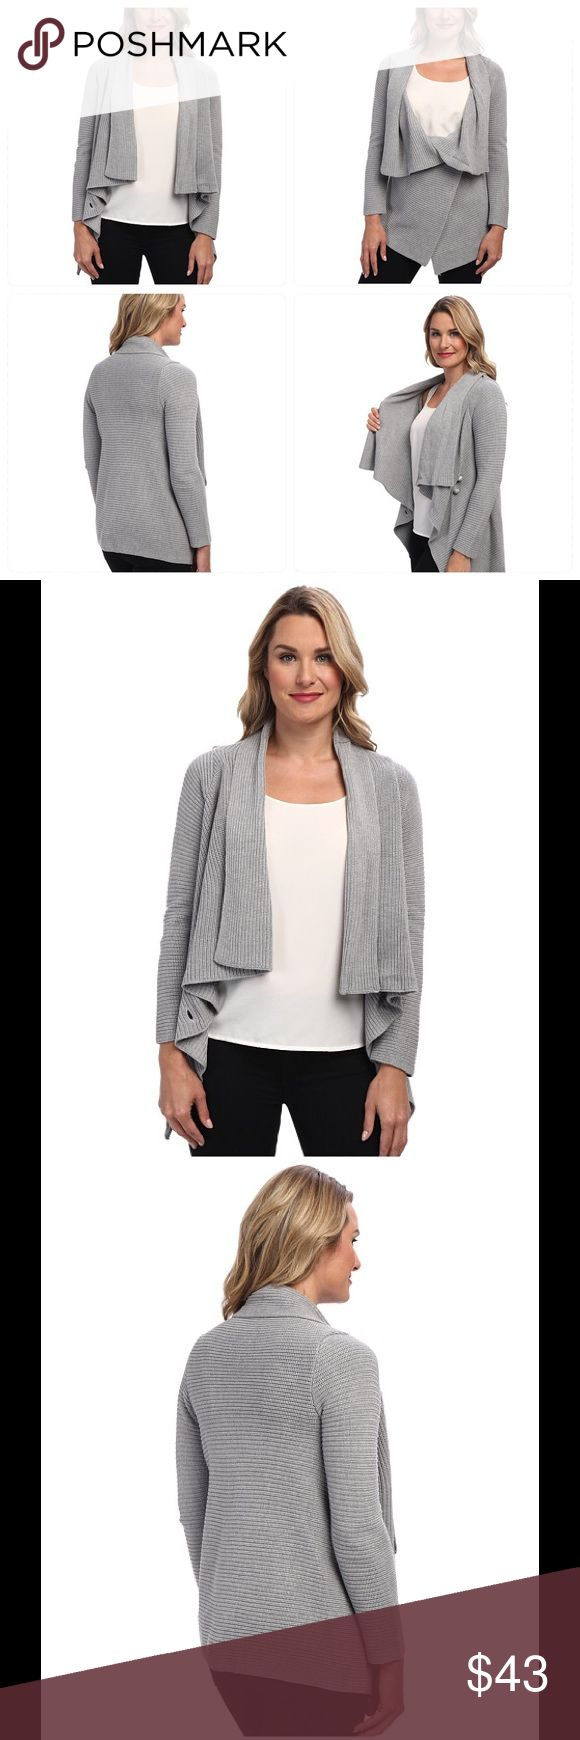 Calvin Klein sweater sale 🎊 Calvin Klein Size Chart Draped silhouette. Ribbed texture all throughout. Open-front design. Long sleeves. Handkerchief hemline. 100% acrylic. Machine wash cold, tumble dry low. Imported. Measurements: Length: 28 in Calvin Klein Sweaters Cardigans